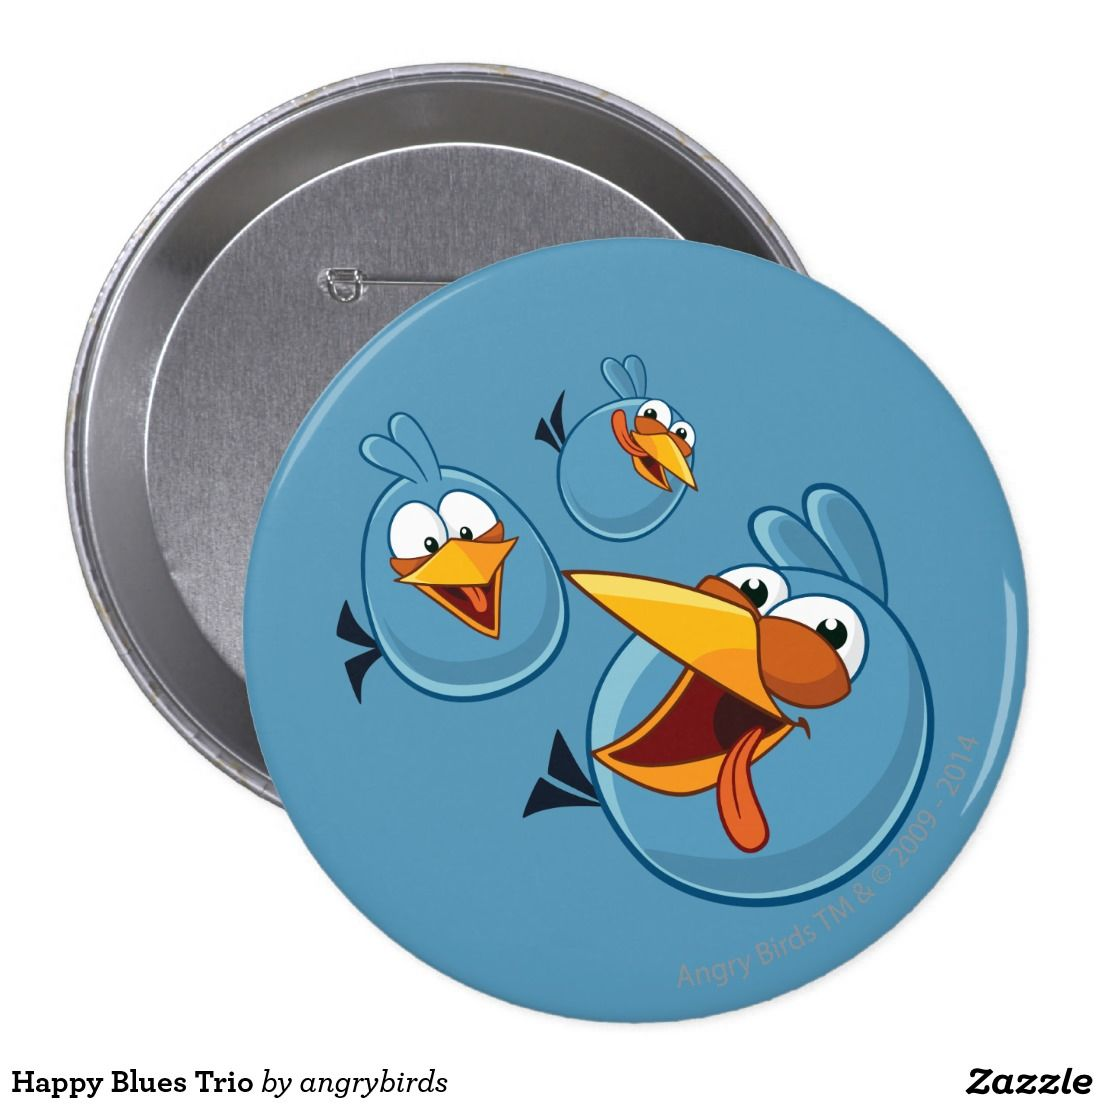 Angry Birds - Happy Blues Trio 4 Inch Round Button. Regalos, Gifts. Producto disponible en tienda Zazzle. Product available in Zazzle store. Link to product: http://www.zazzle.com/happy_blues_trio_4_inch_round_button-145883476625453274?CMPN=shareicon&lang=en&social=true&rf=238167879144476949 #chapa #button